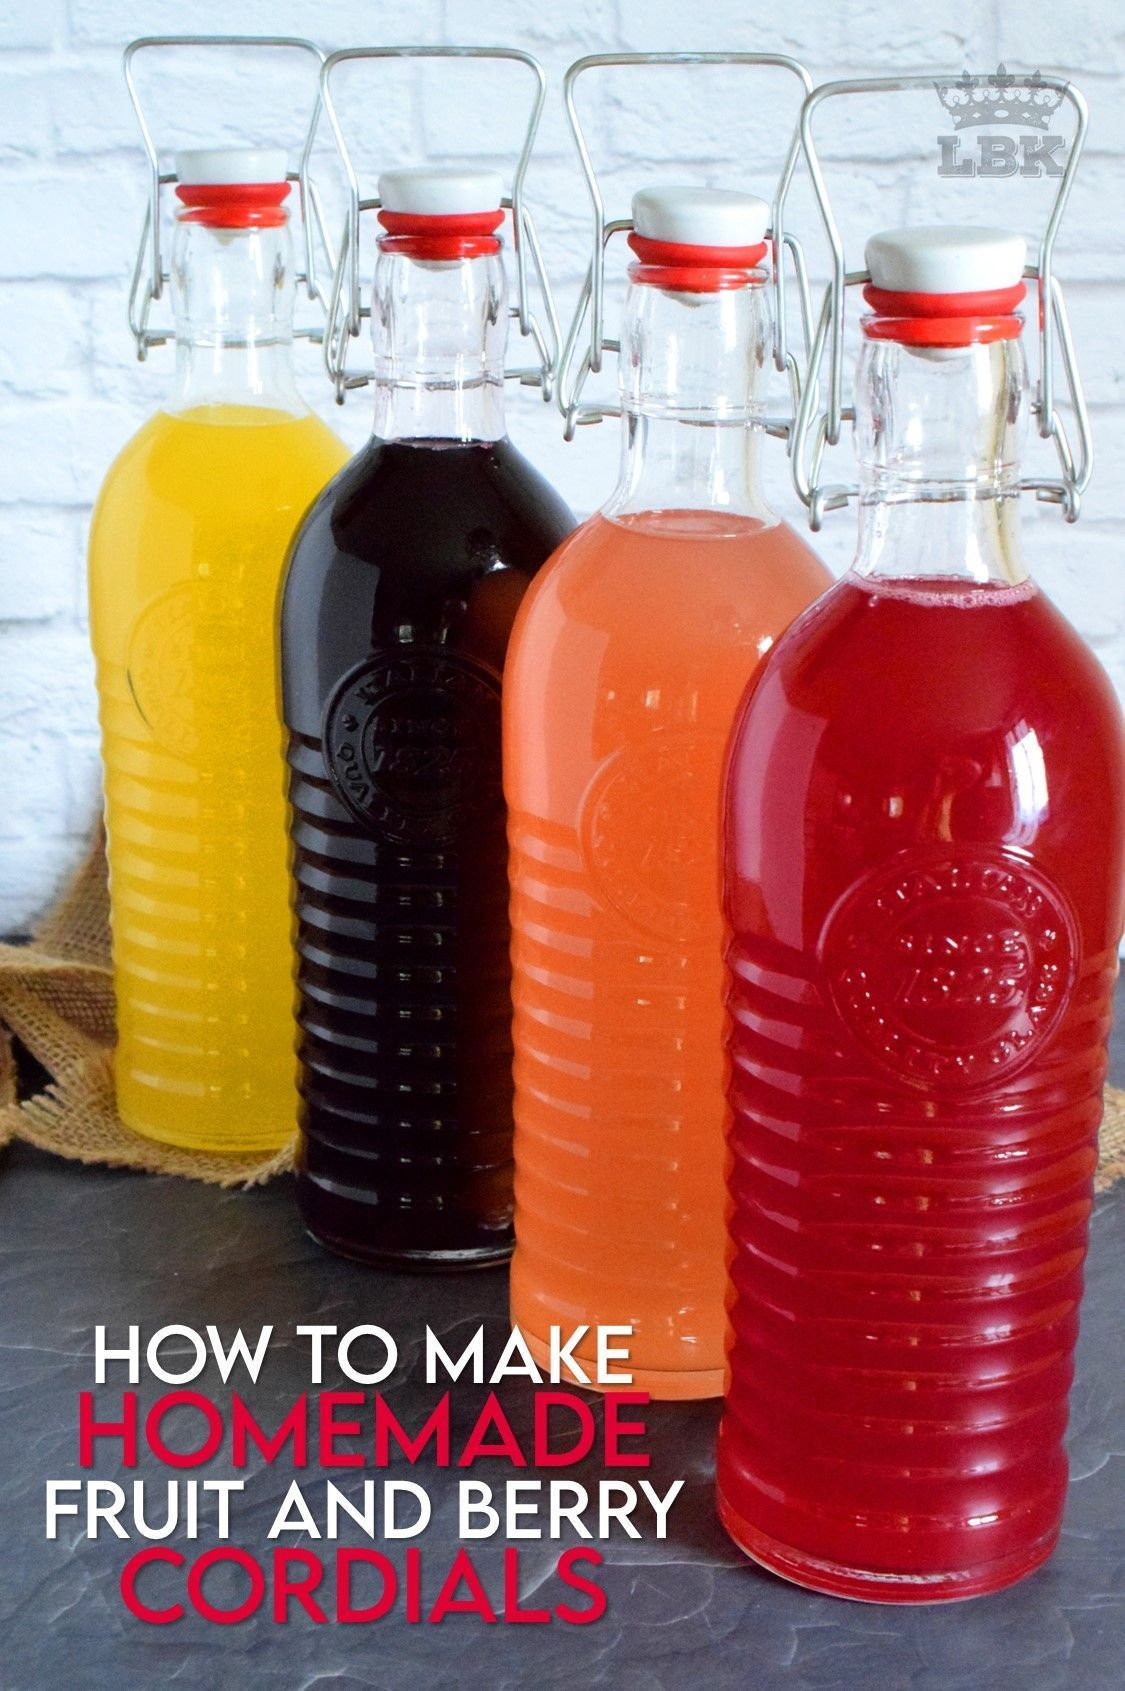 How To Make Homemade Fruit And Berry Cordials In 2020 How To Make Homemade Cordial Berries